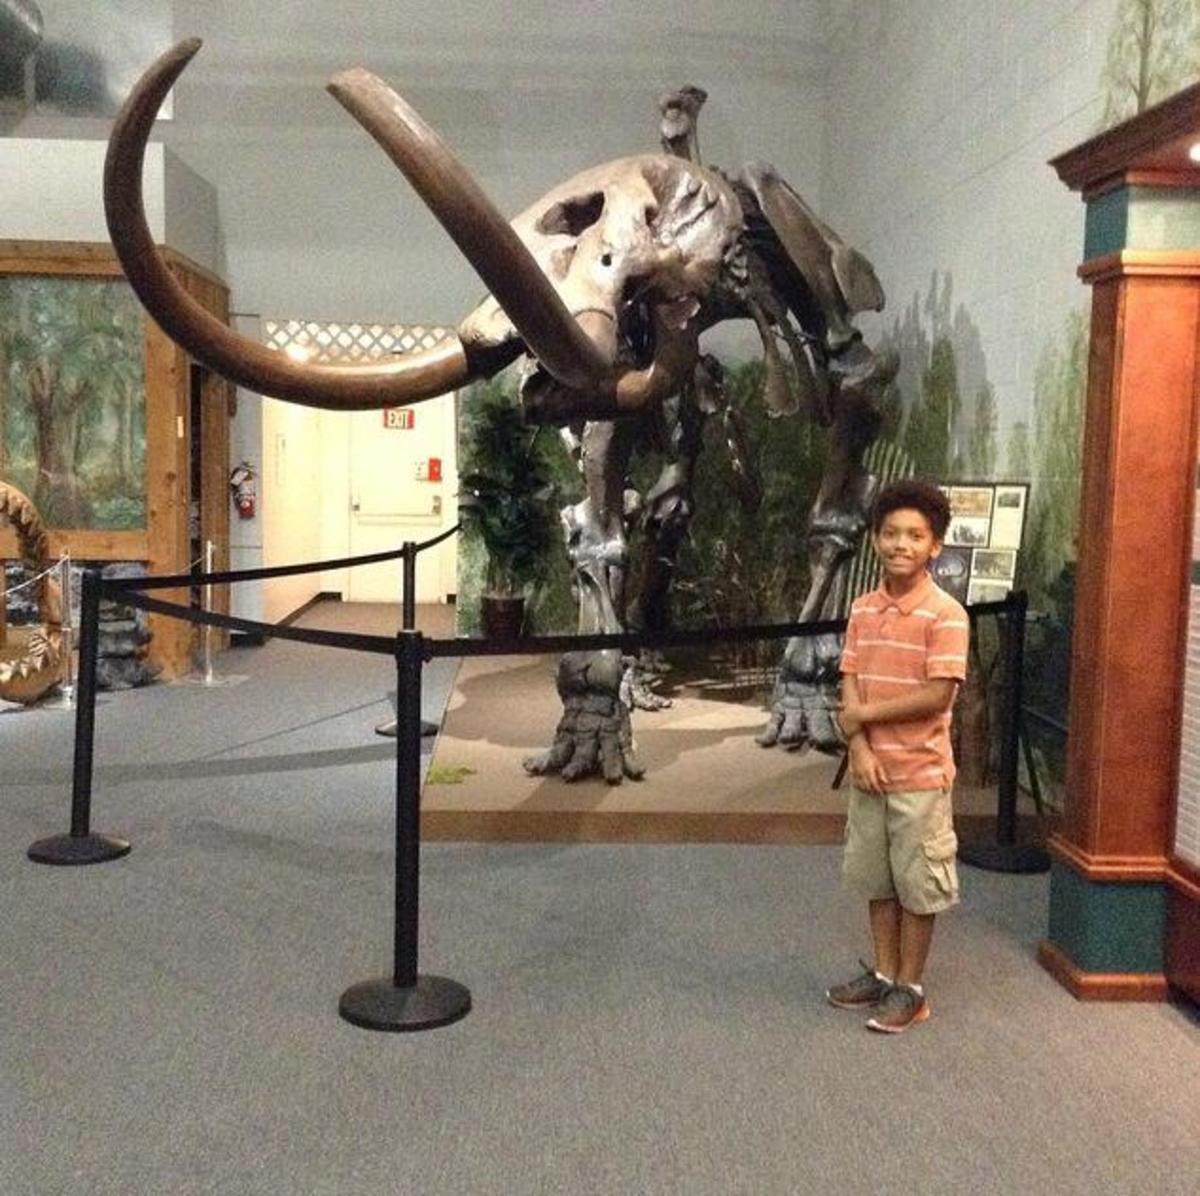 My youngest son and I visited the Brevard Museum of History & Natural Science in Cocoa, Florida over the Summer break.